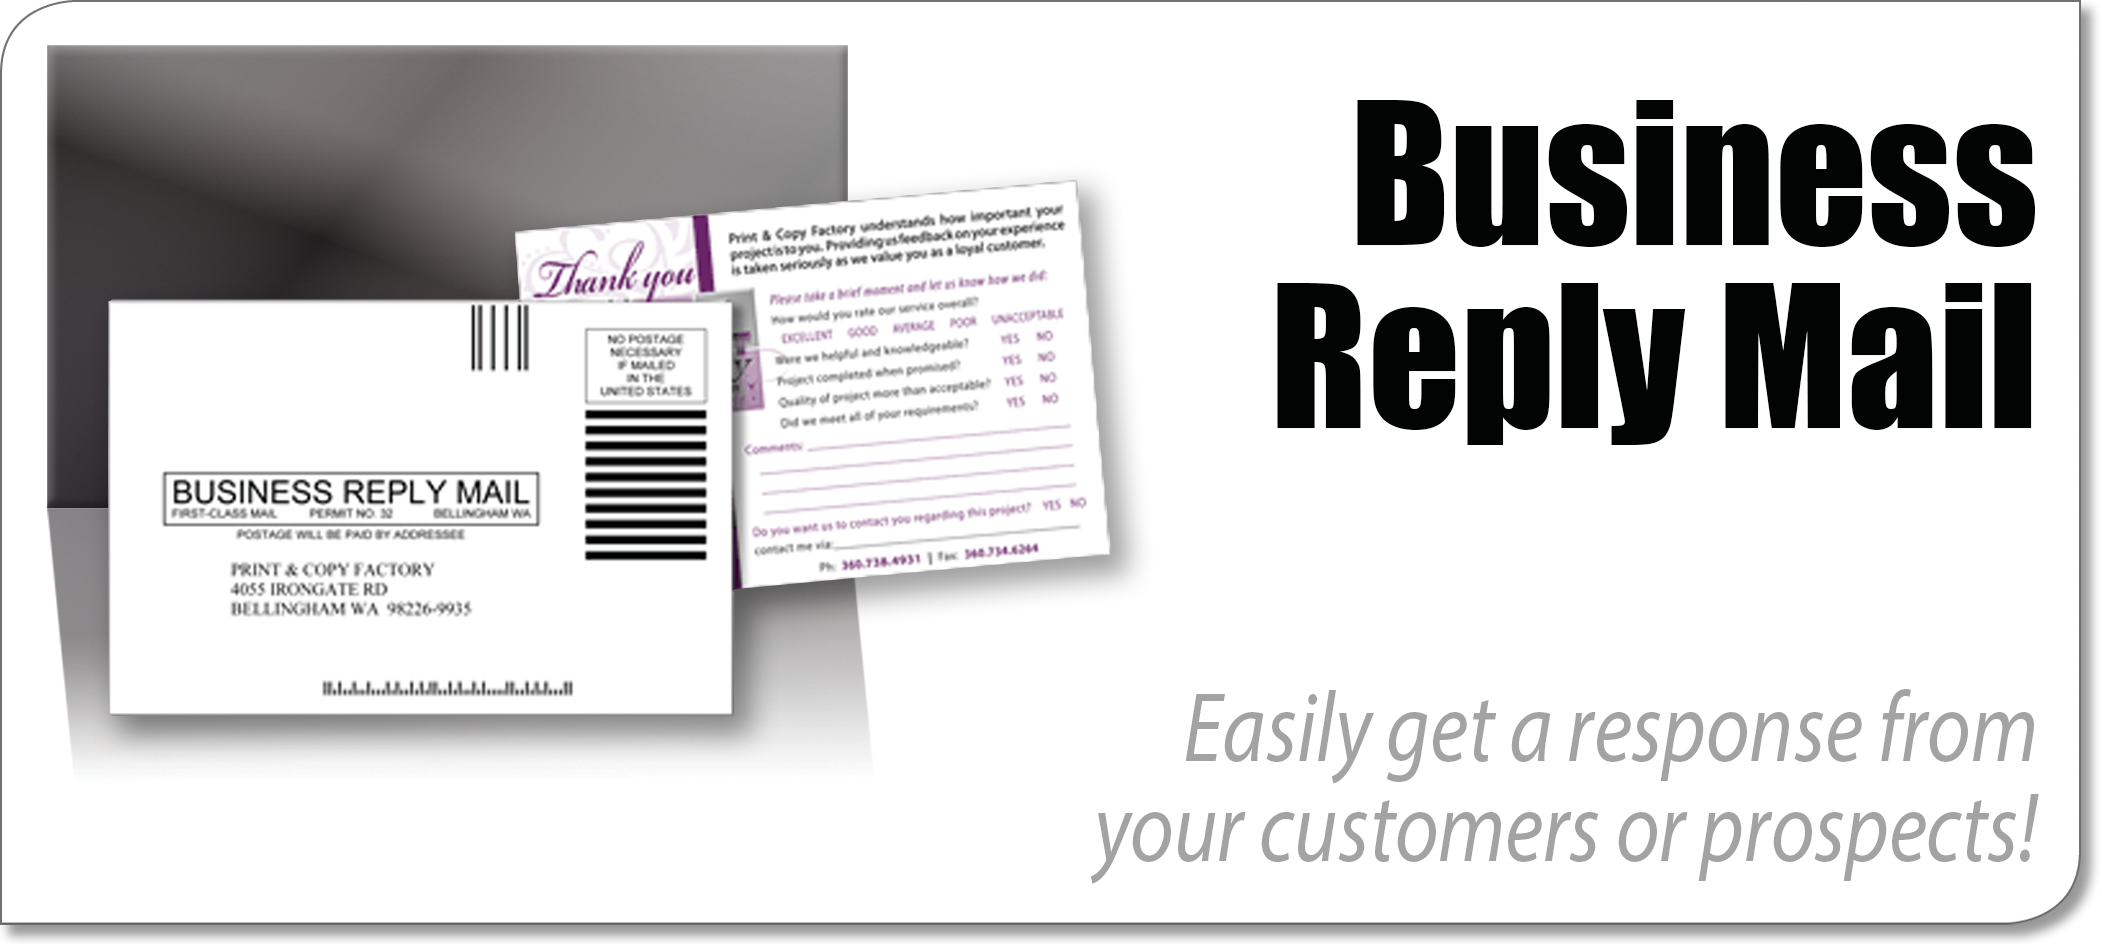 Business Reply Mail Print Amp Copy Factory Pcfwebsolutions